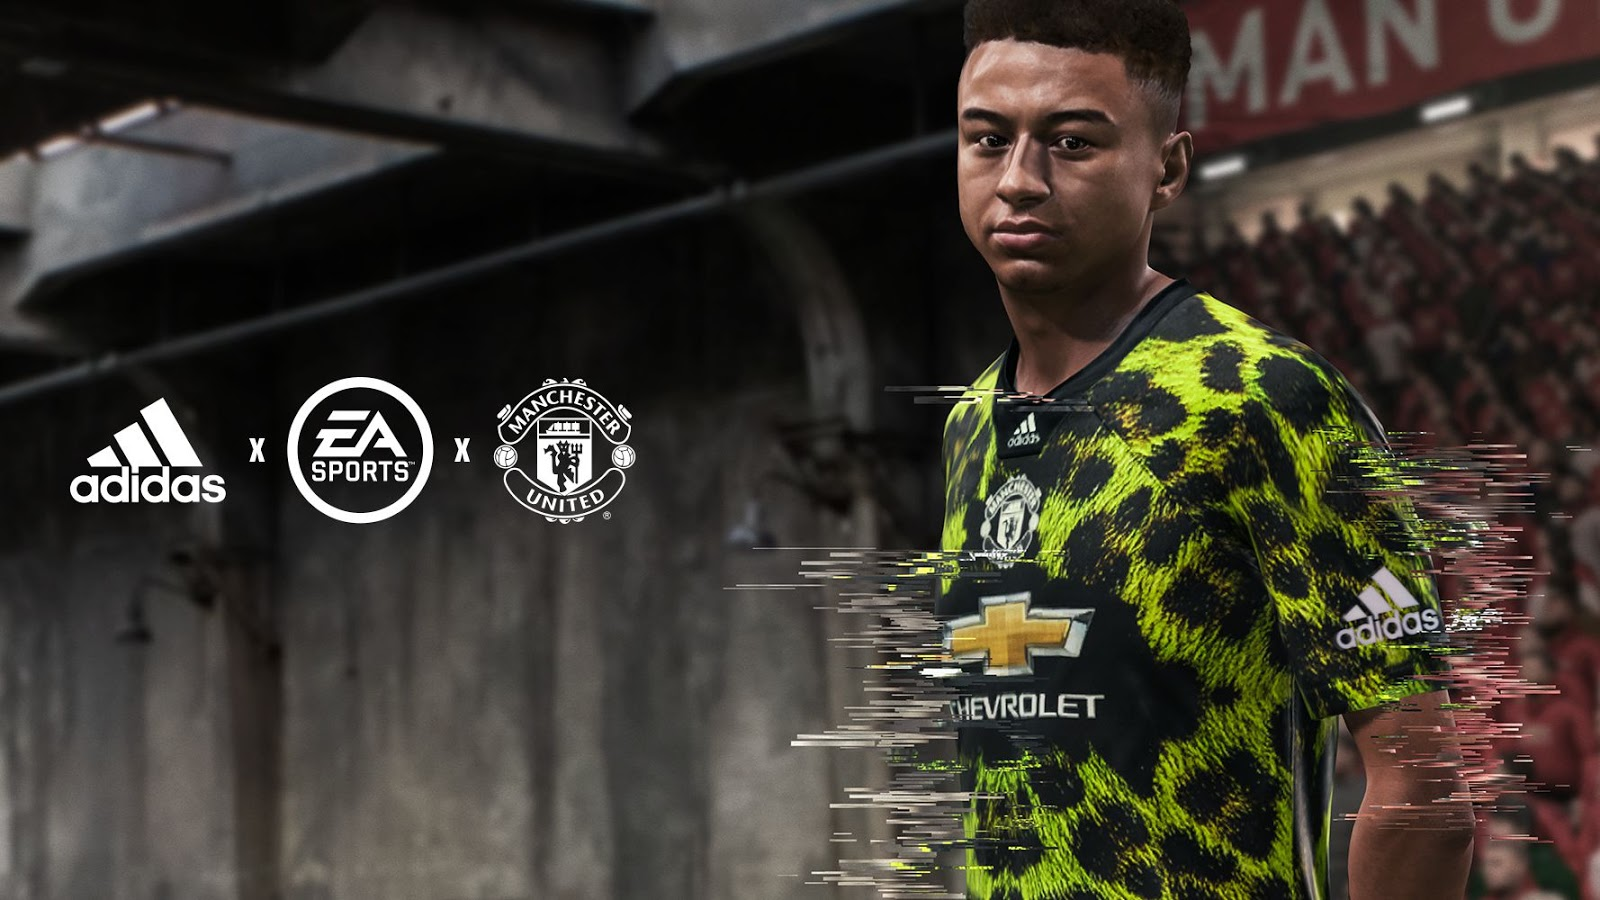 Adidas x EA Sports Manchester United Kit Released - Footy Headlines 3946cb000